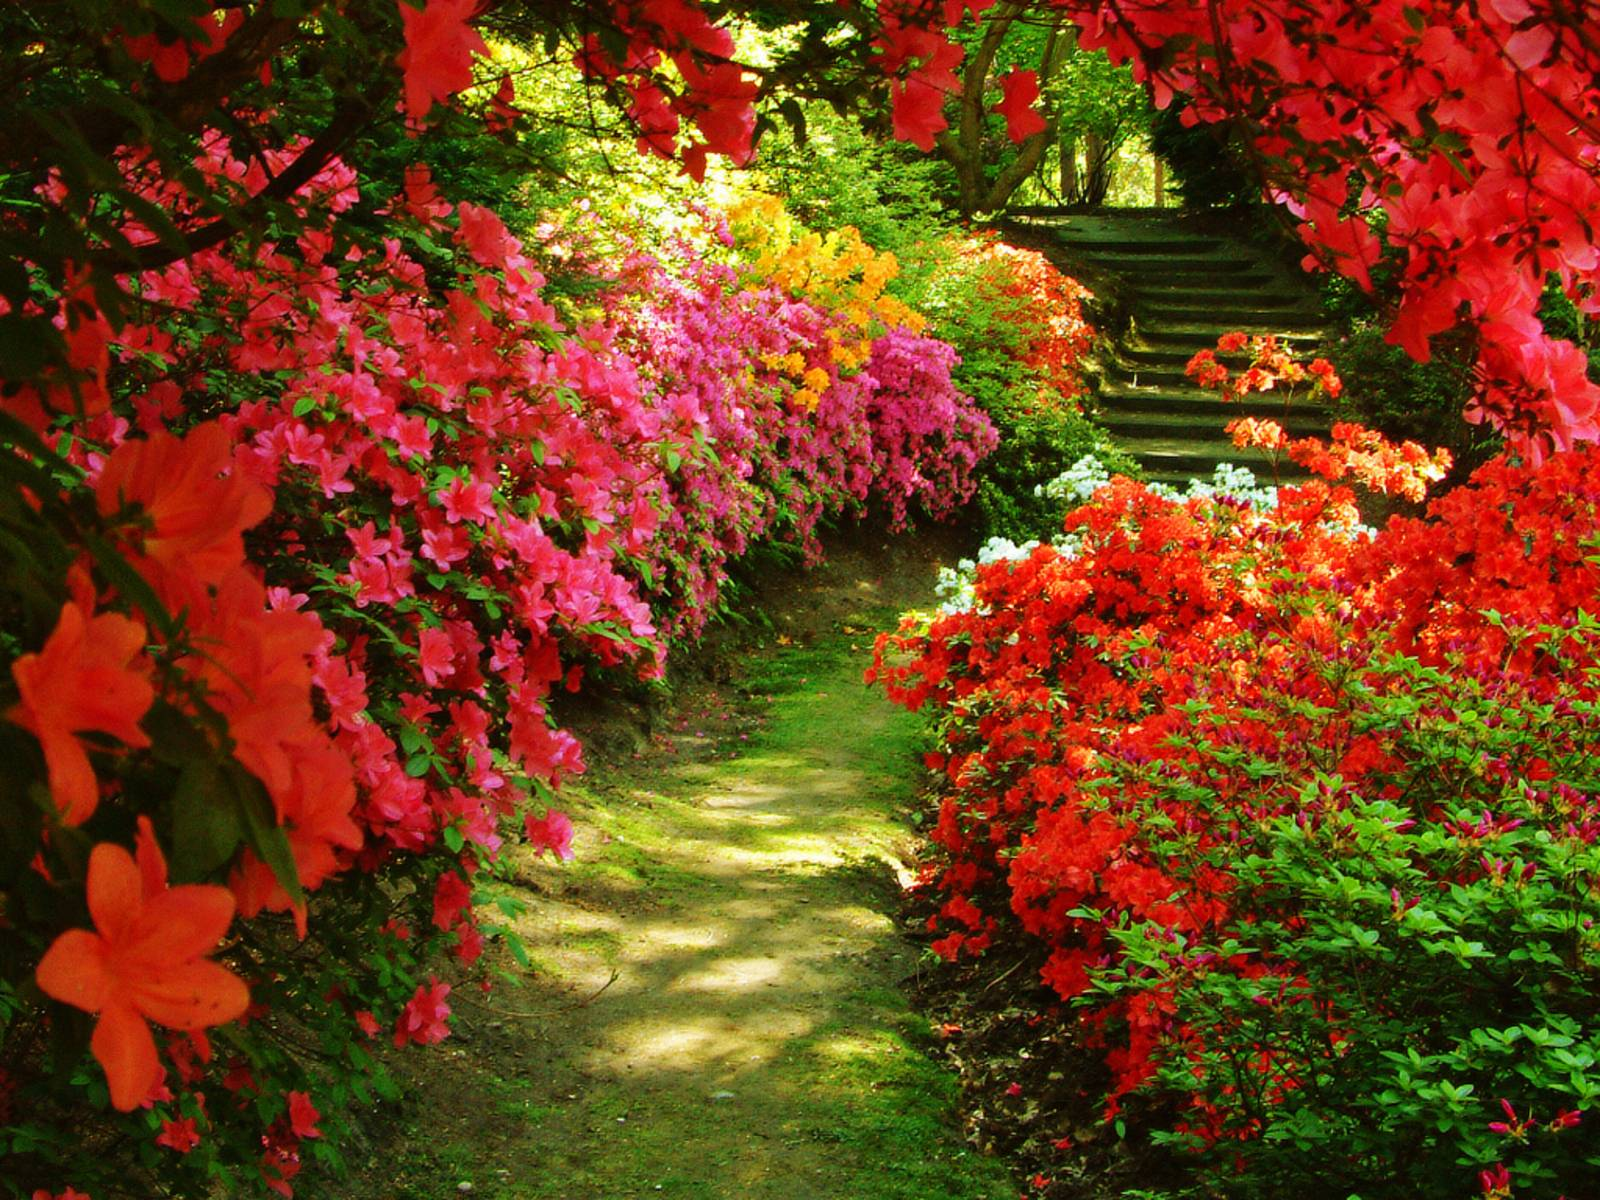 images for beautiful flower garden background - Garden Flowers Wallpaper